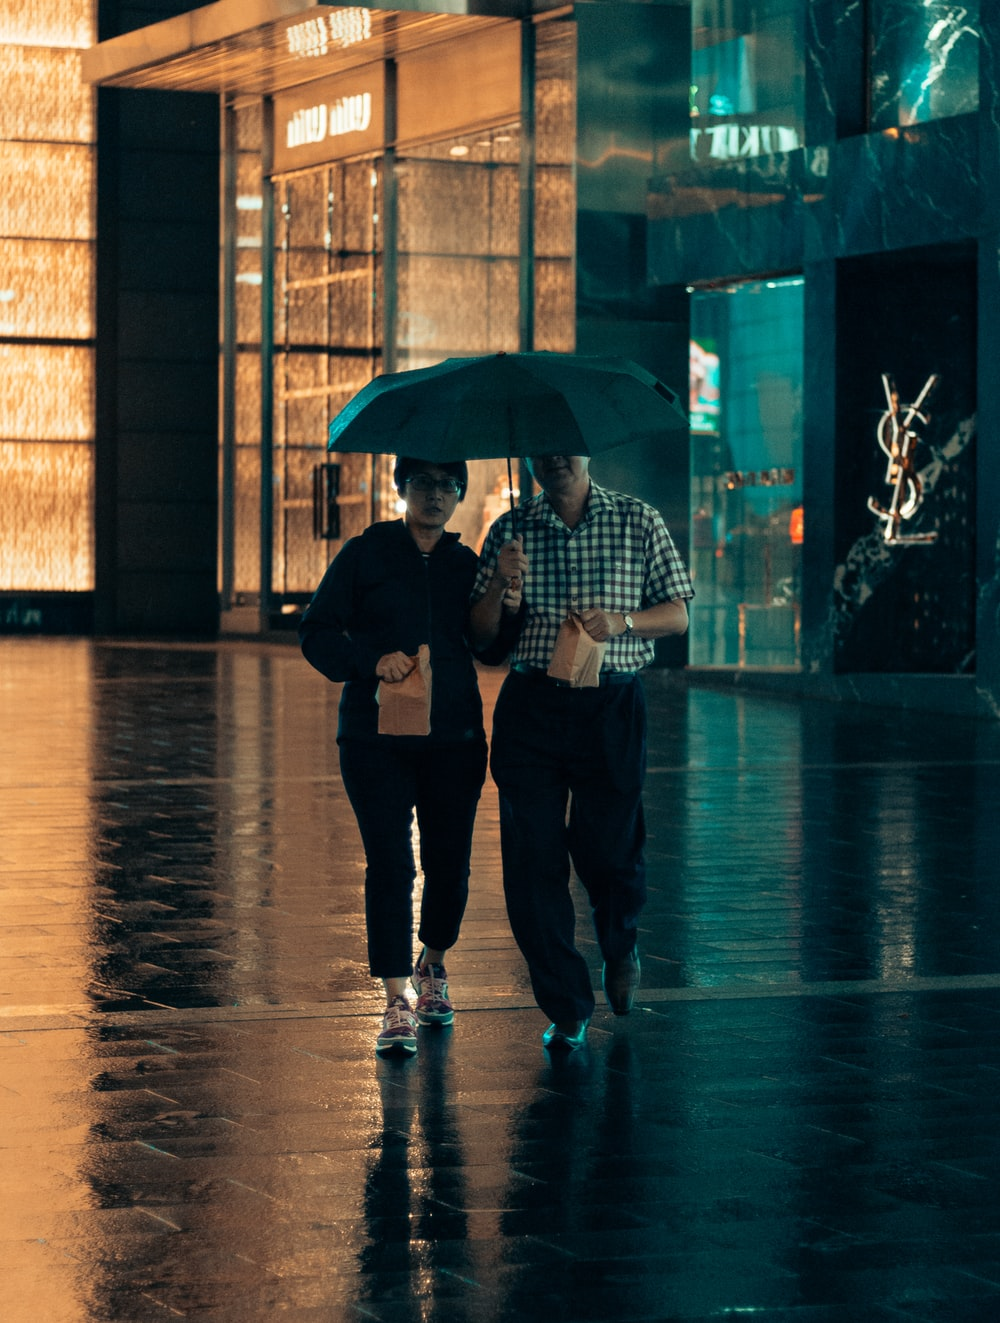 man and woman under same umbrella walking while holding paper bags